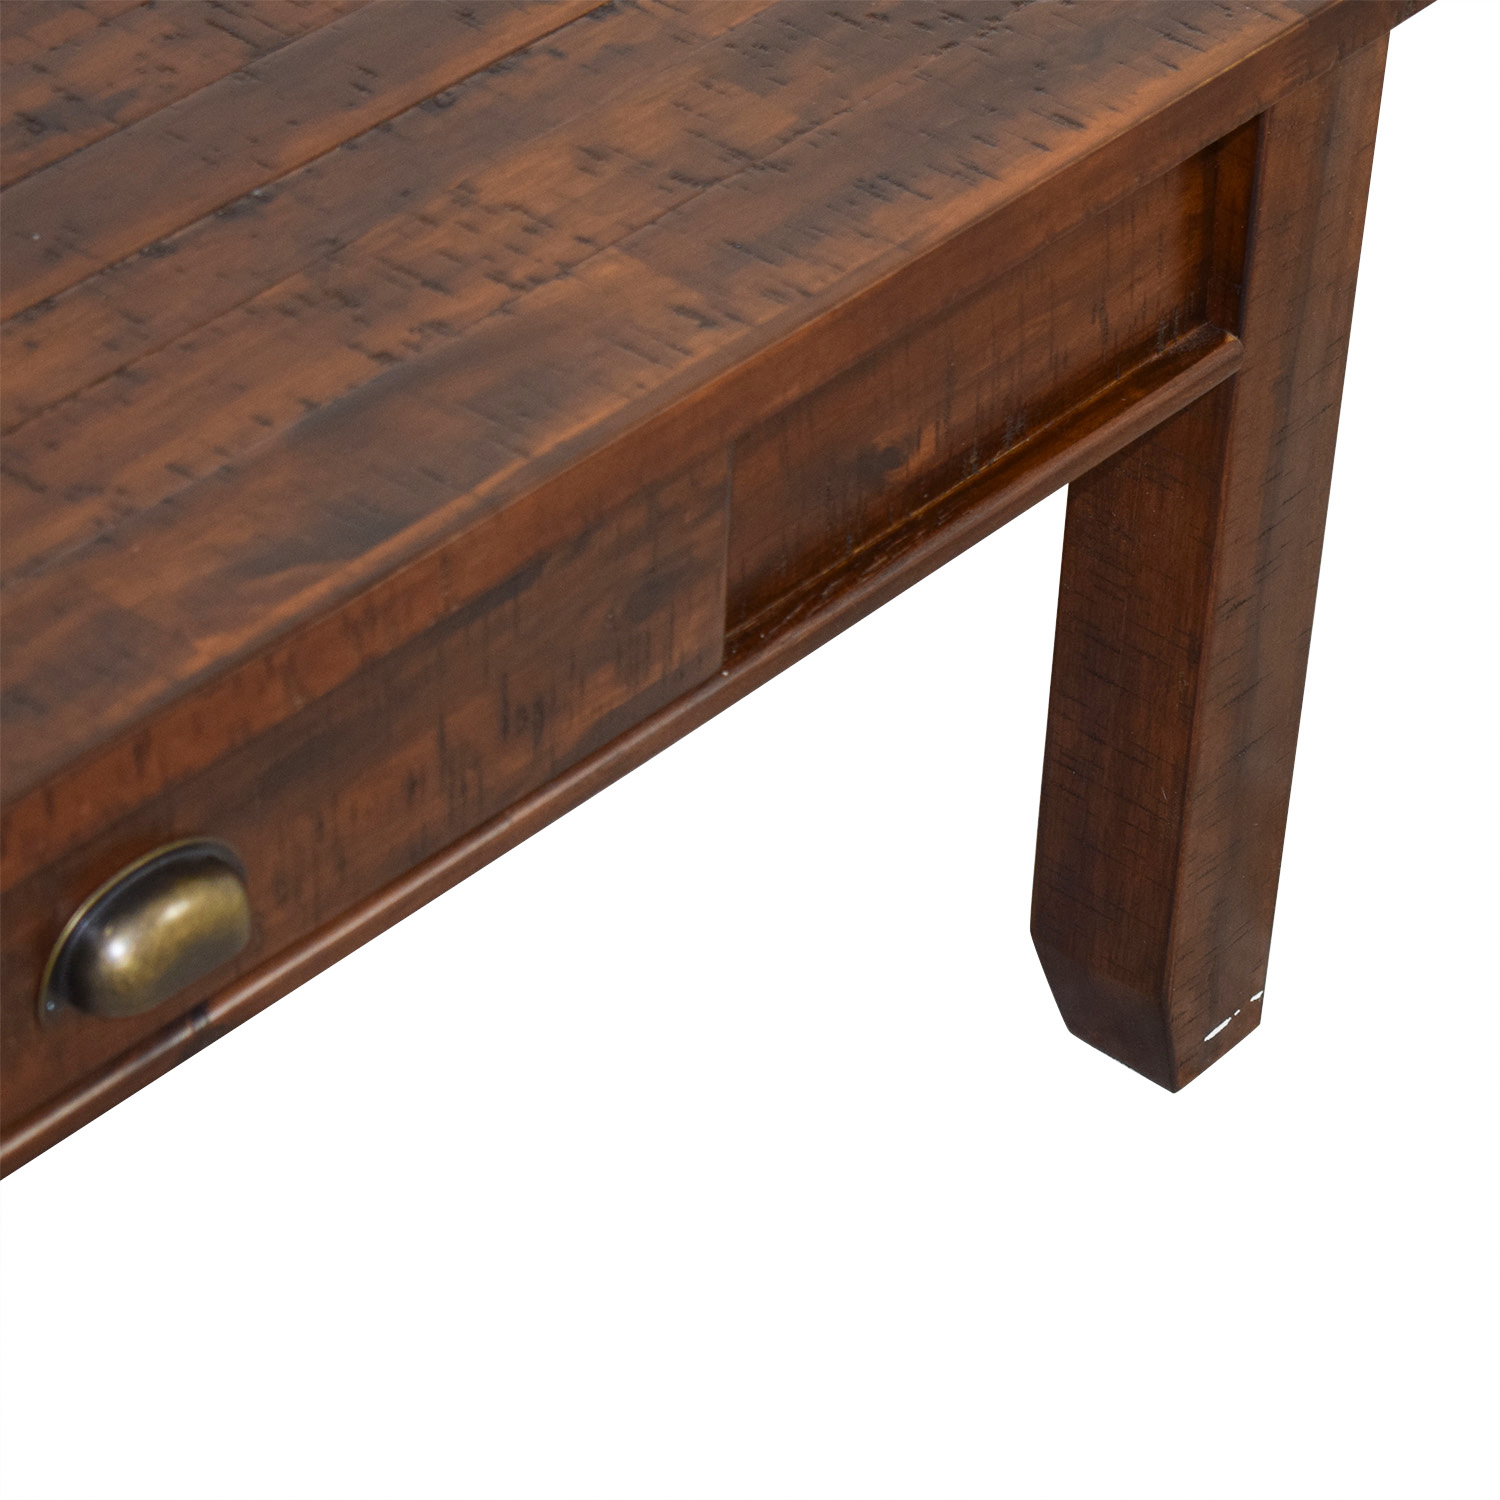 Raymour & Flanigan Raymour & Flanigan Urban Lodge Coffee Table brown